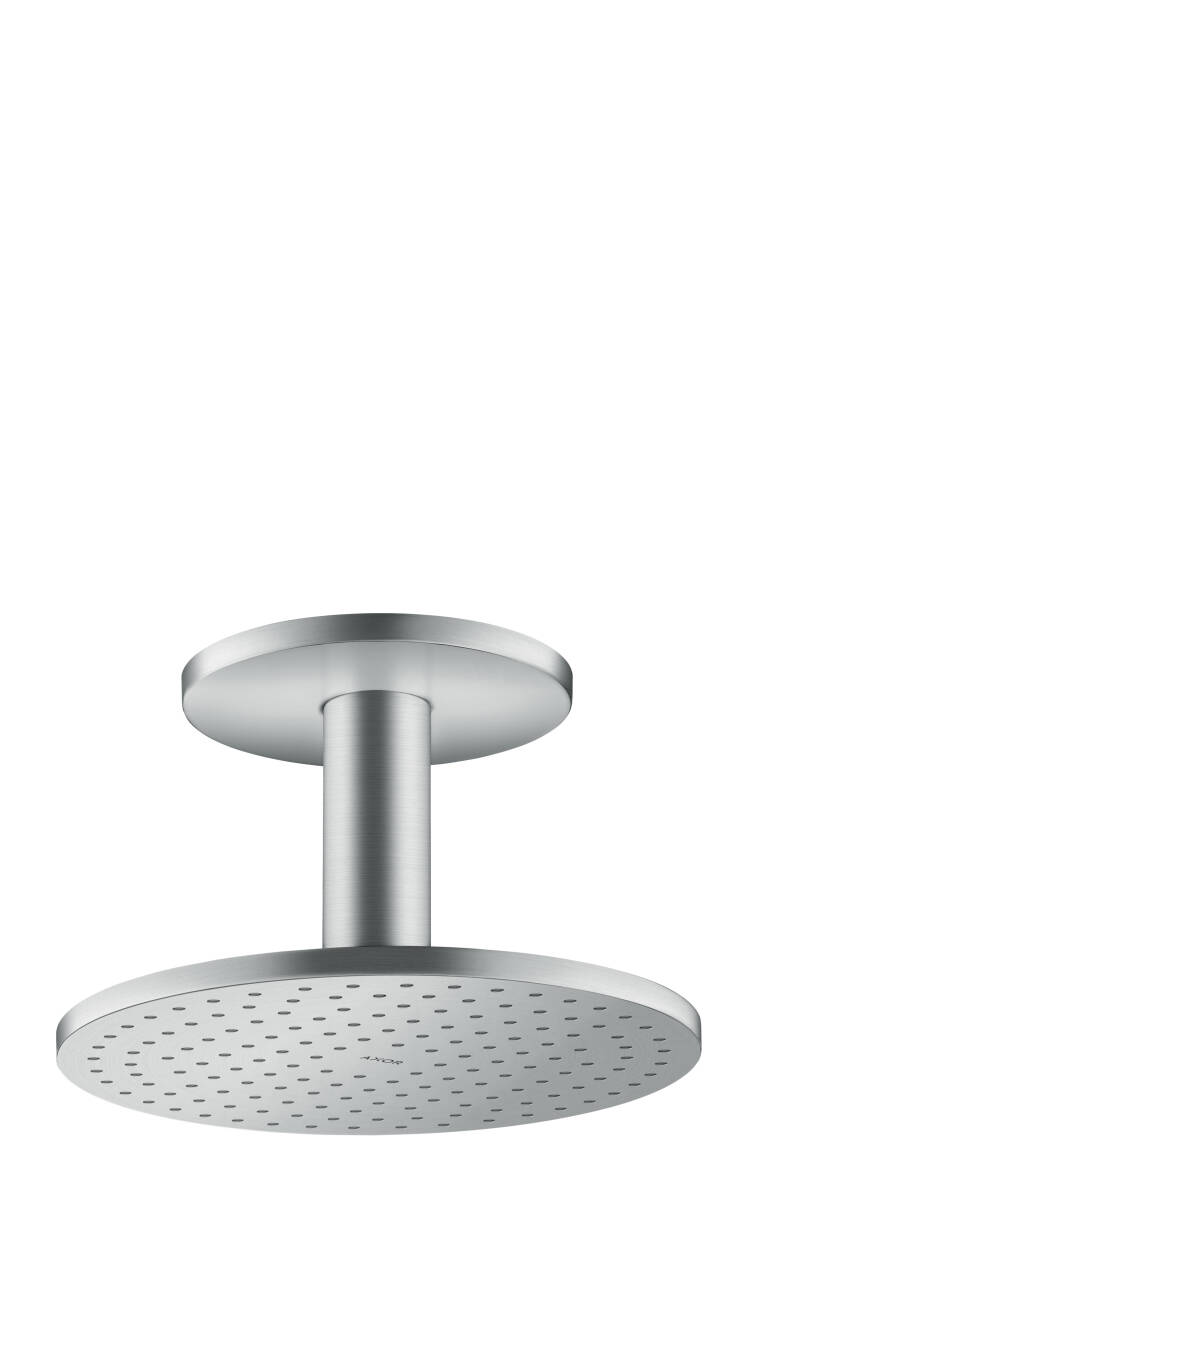 Overhead shower 250 1jet with ceiling connection, Brushed Chrome, 35286260